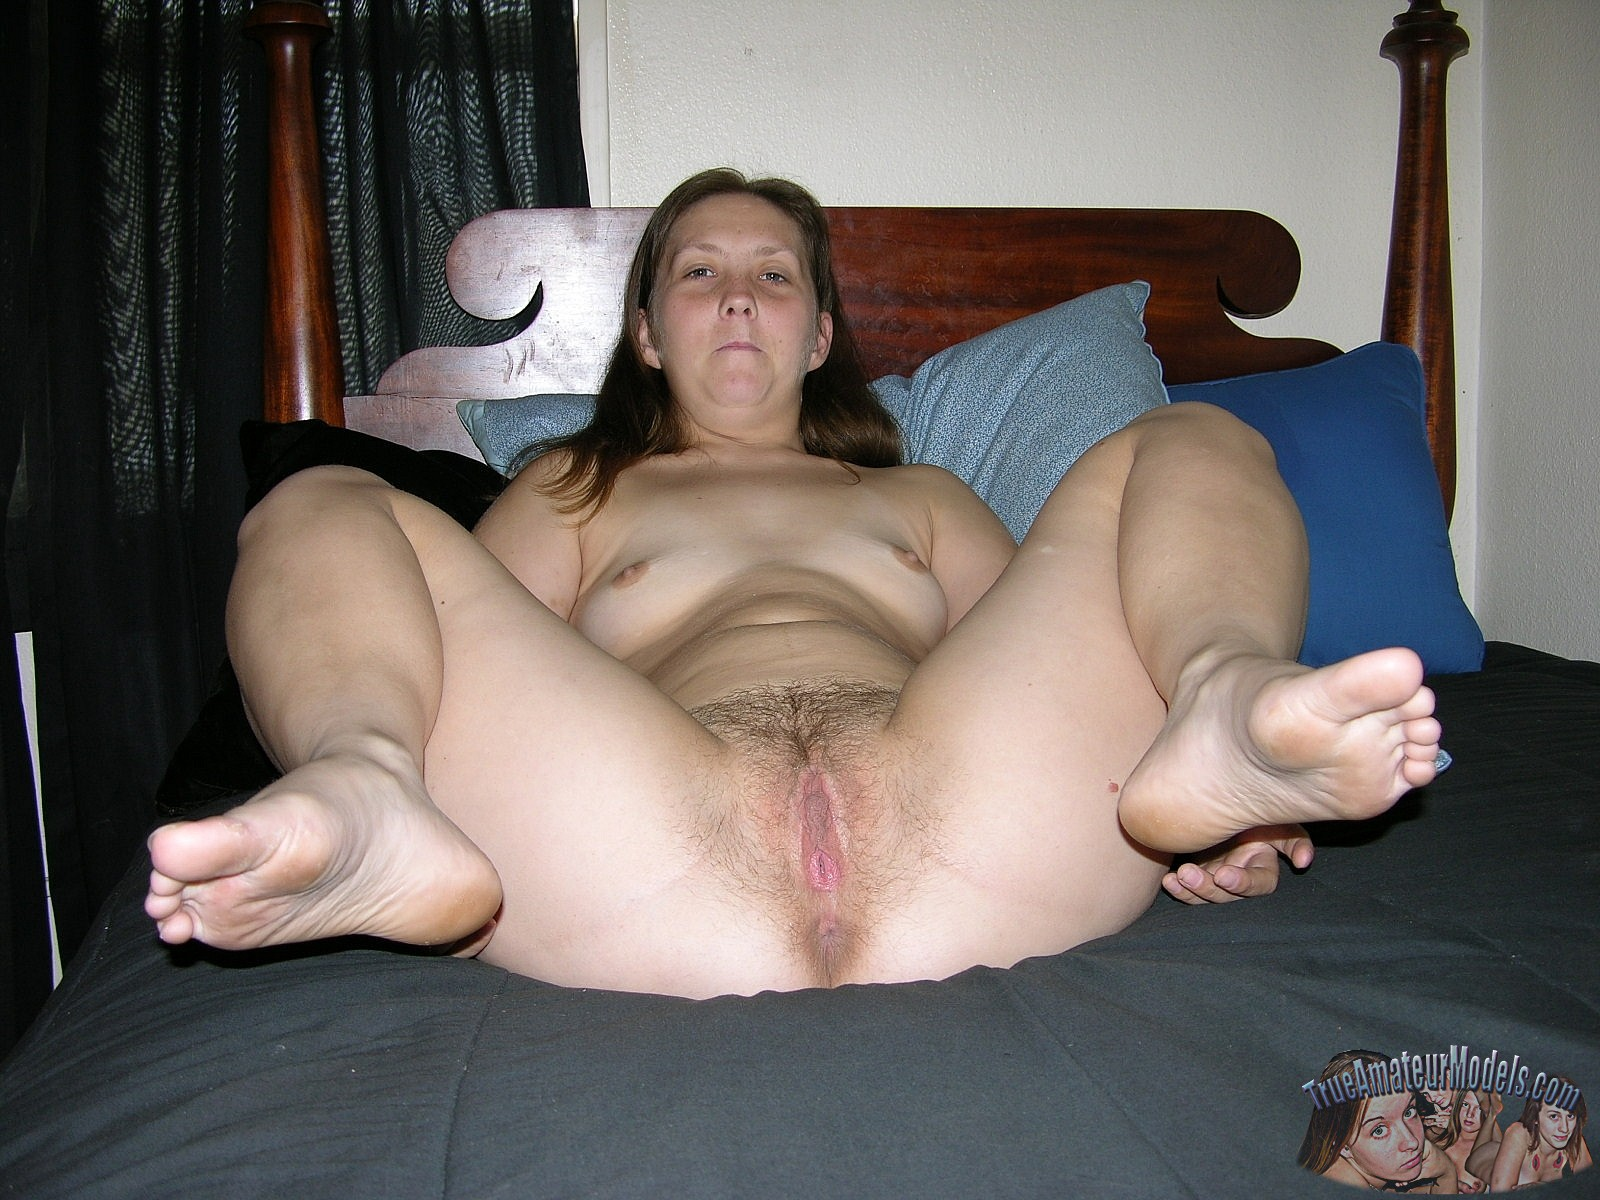 Nude Redneck Woman Videos 49